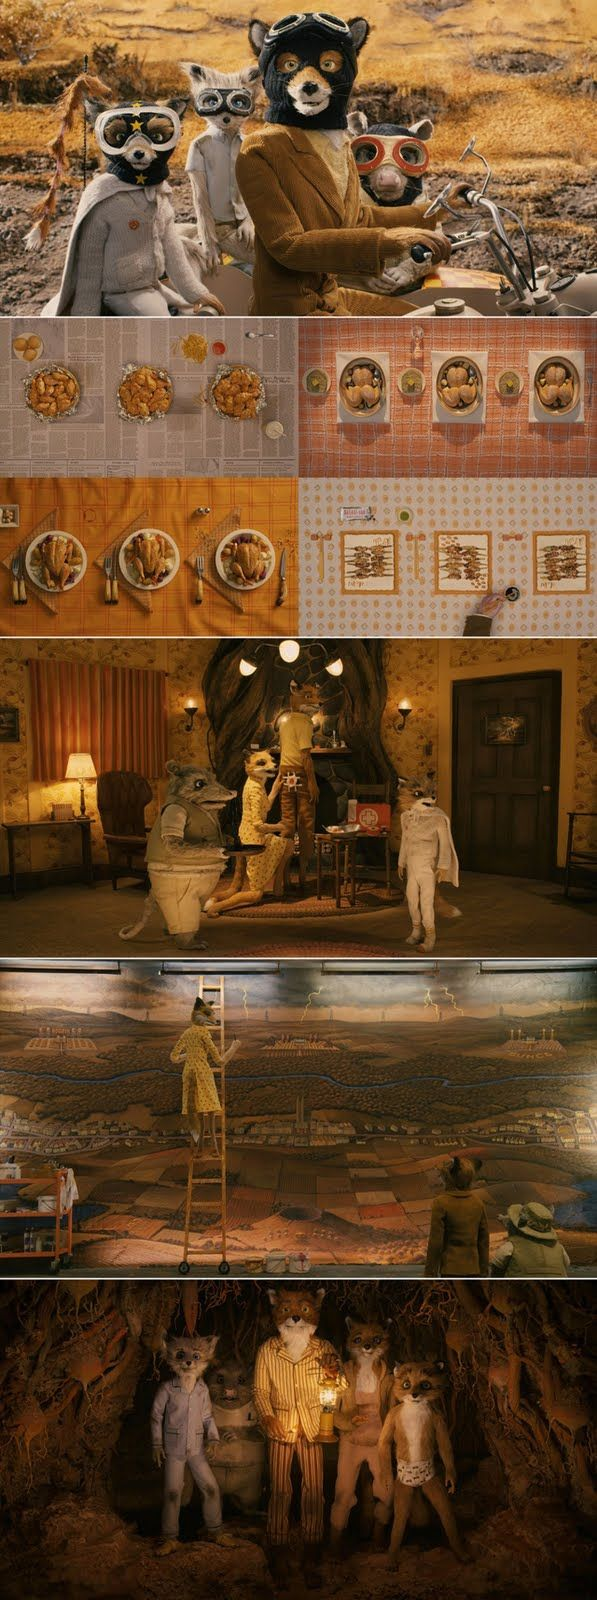 PRODUCTION DESIGN/ANIMATION Fantastic Mr. Fox [2009] Wes Anderson In Roald Dahl's Fantastic Mr Fox, Anderson extends his use of puppetry seen in earlier films to create a full length animation will as much attention to detail and epic storytelling as ever.